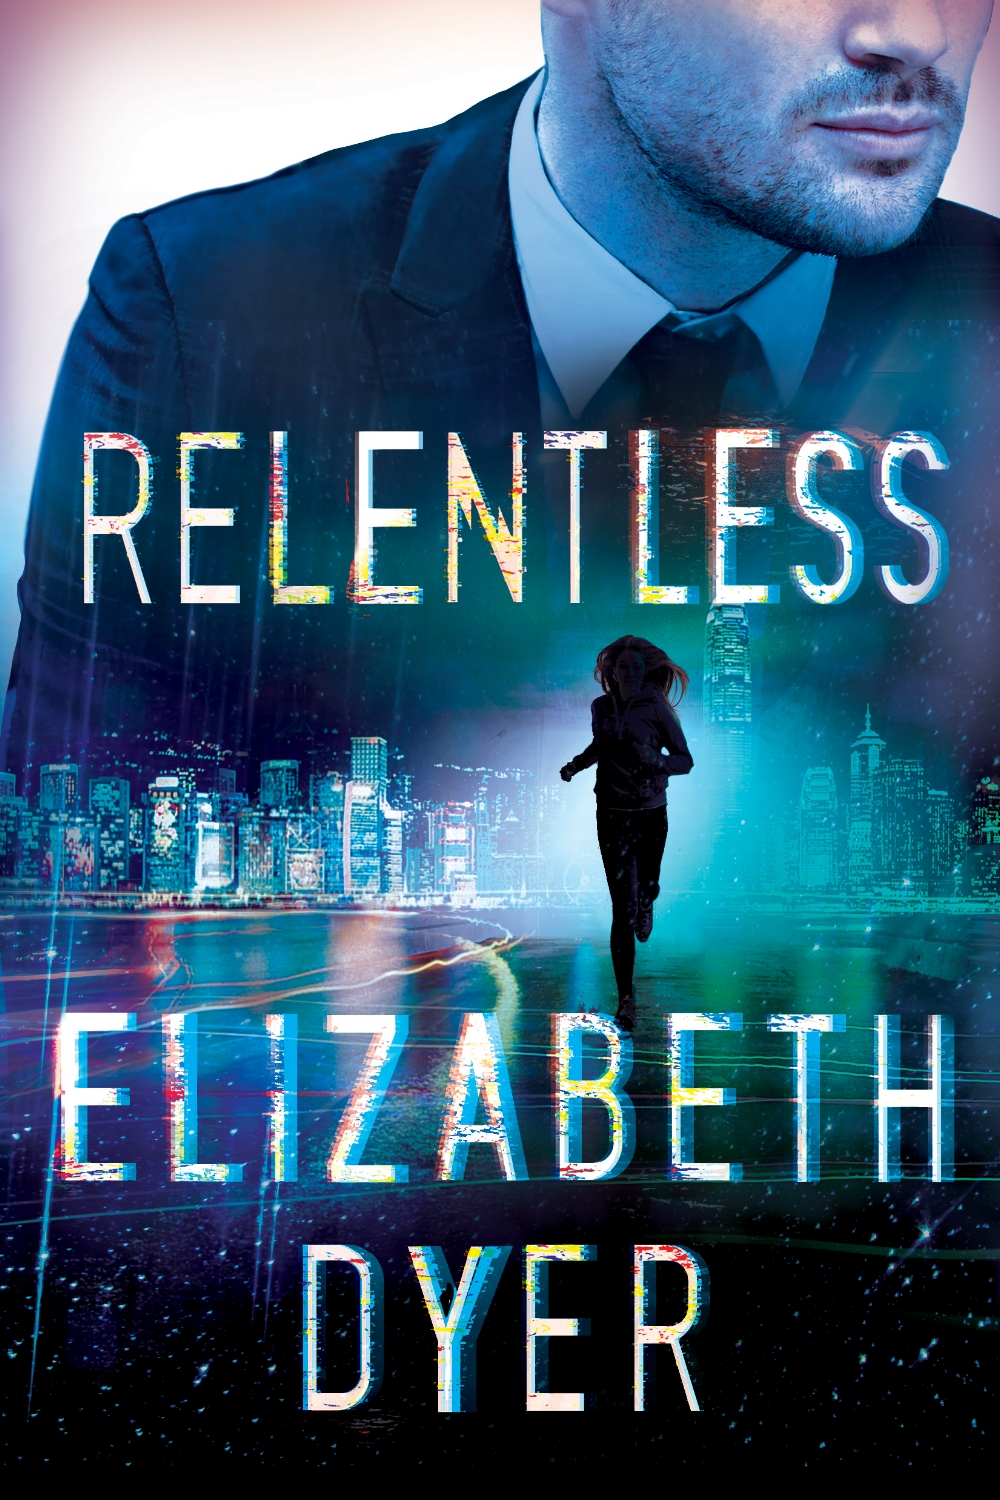 Relentless (Somerton Security, Book 2) - He'd kill to find a way into the cartel. She'd die to find a way out . . .Ethan Somerton doesn't do safe or easy. He's all about the challenge. The risk. In order to rescue one of his agents, Ethan must infiltrate the ruthless Vega cartel. One tiny error—just one—and he's dead. Which means he needs Natalia Vega. Bright, beautiful, and cut sharper than the most lethal blade, she's finally reached her breaking point. Now Ethan must find a way to make her surrender.Caught between desperate choices and no-win situations, Natalia has survived the unthinkable by becoming dangerous, relentless, and feared. When it comes to protecting her sister, there's no line she won't cross. But when Ethan storms into her life with his cocksure arrogance, stone-cold competence, and seductive promises, Natalia wonders if she's finally found a way out. But discovering whether Ethan is salvation or destruction is going to require the one thing Natalia doesn't have—trust.As the cartel implodes and loved ones are threatened, Ethan and Natalia are going to have to choose between love, loyalty, and the lies they cling to. They could run, knowing they'll never be safe. They could fight, knowing they'll probably die. Or they can trust in each other…and do something far more dangerous.